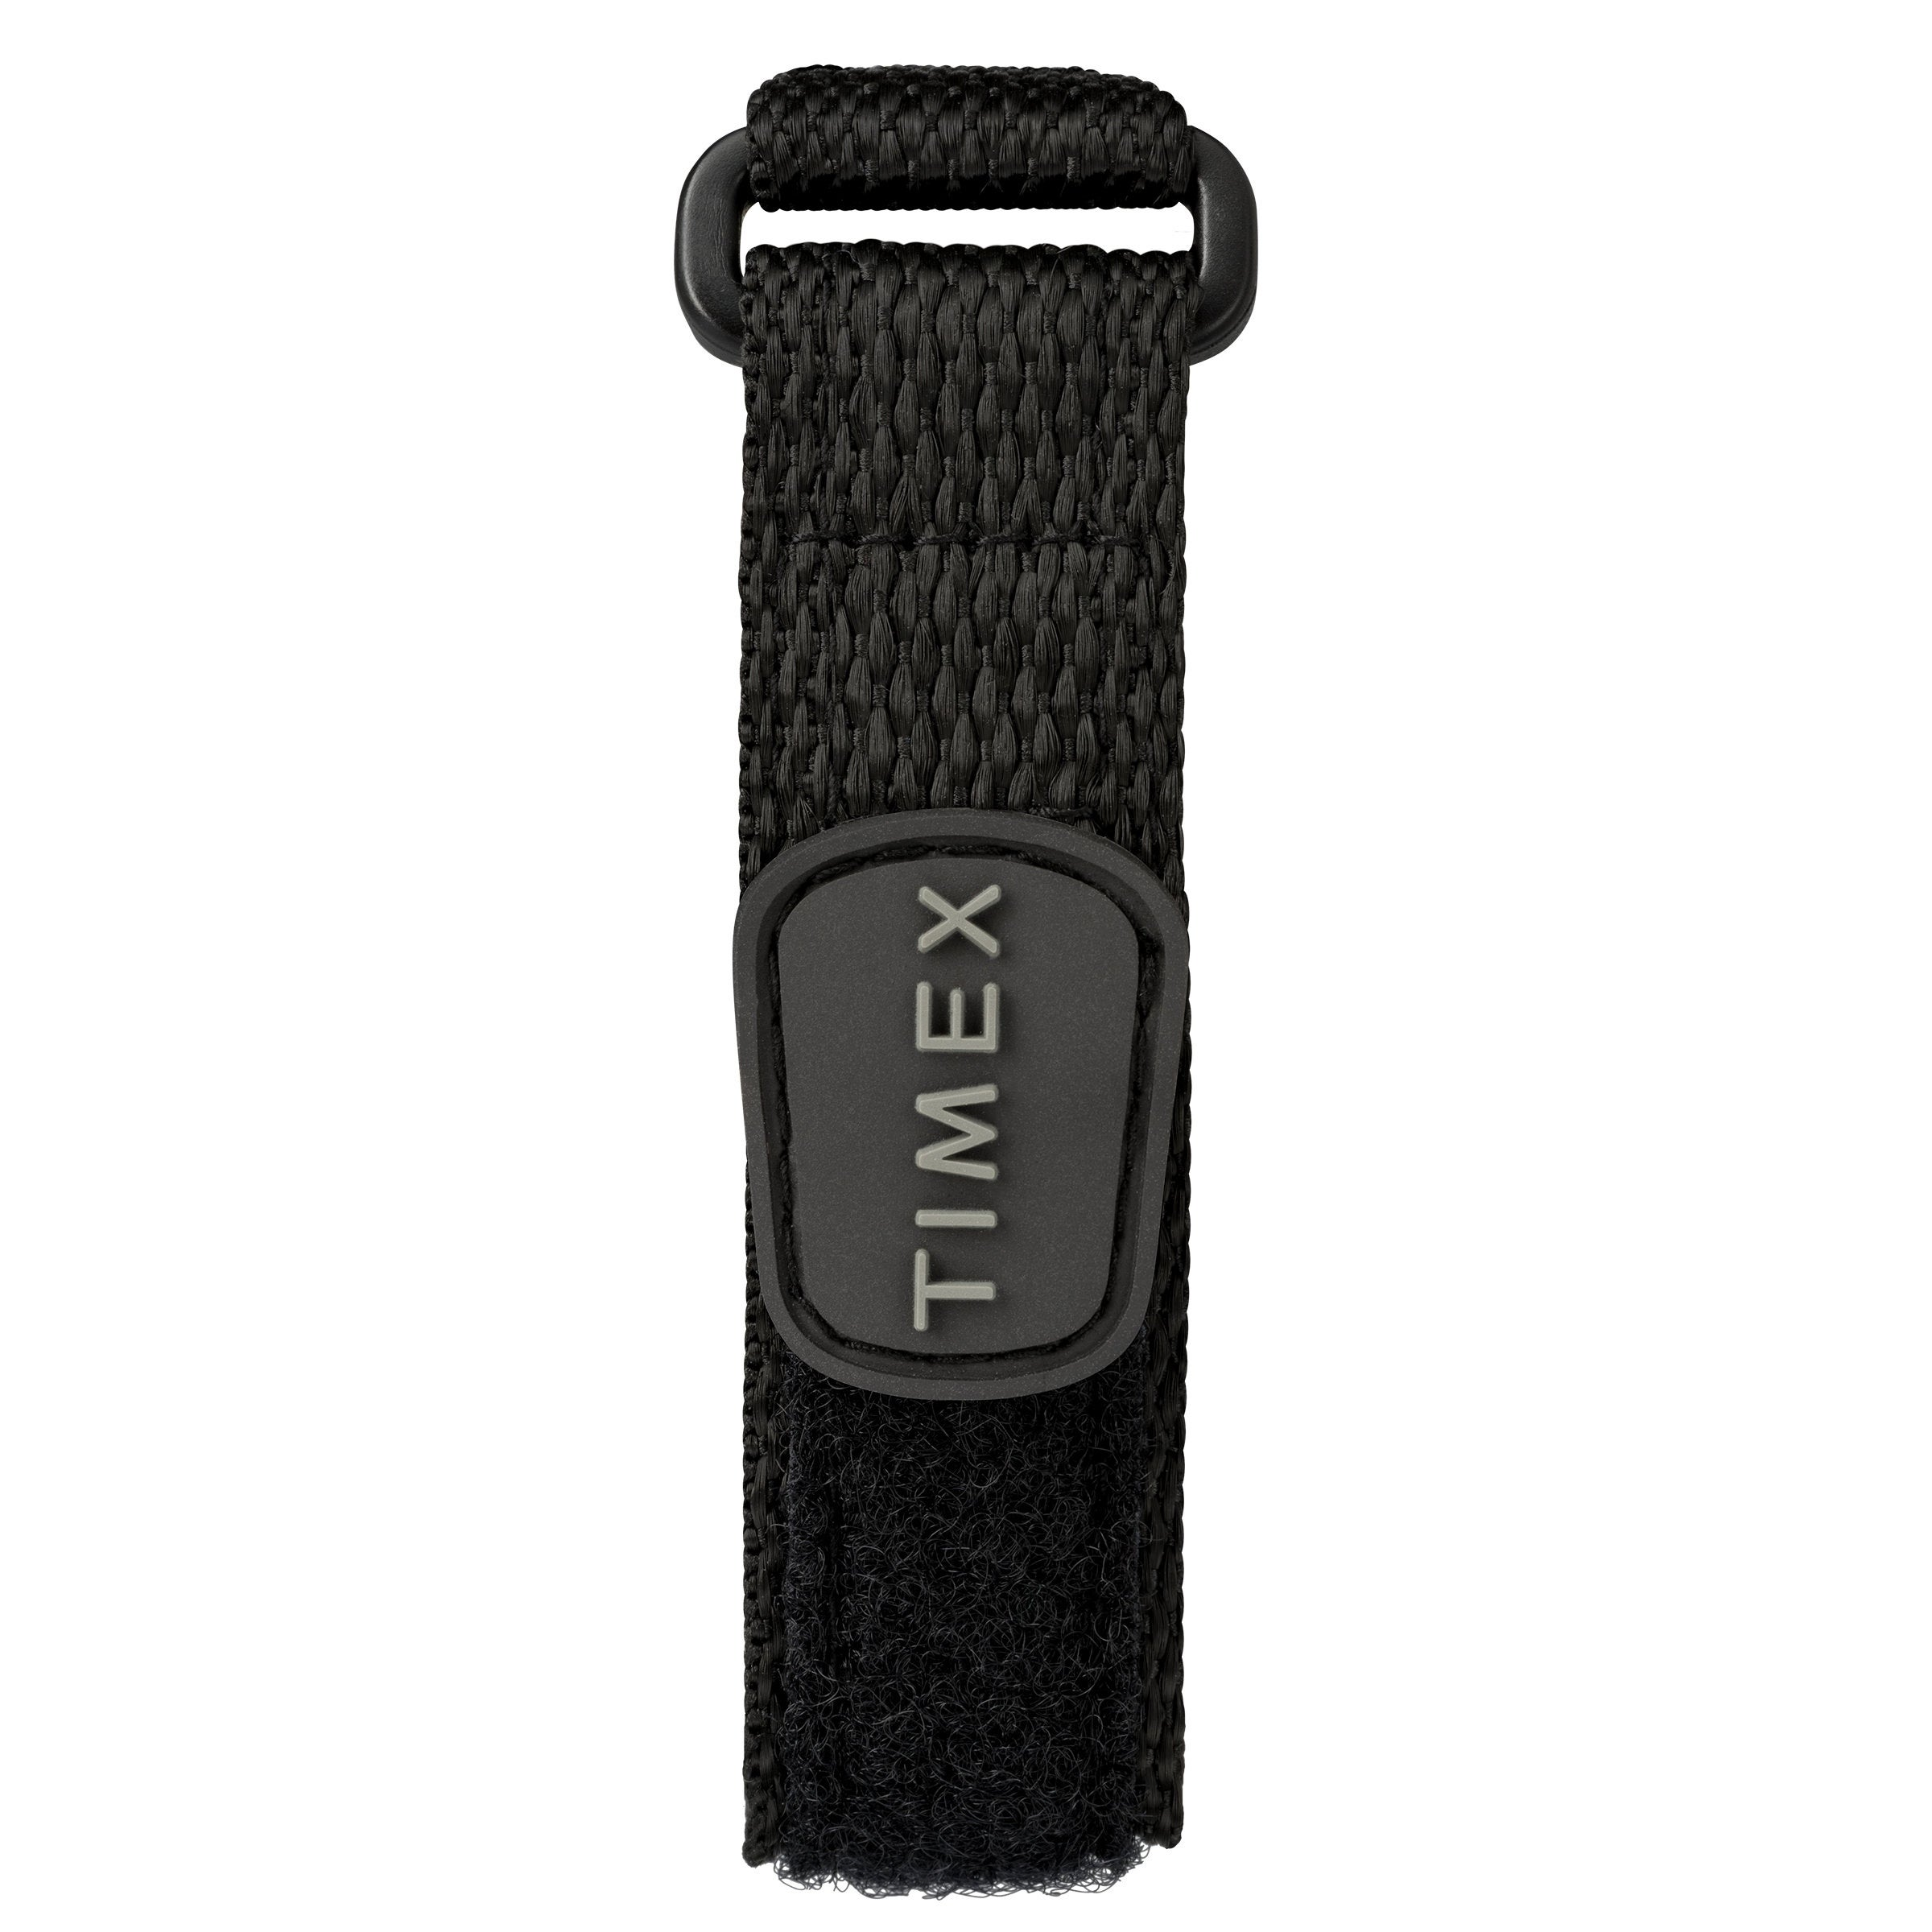 75776be62 Shop Timex Kids TW7C26400 Time Machines Digital 35mm Black Double-Layered  Fast Wrap Watch - Free Shipping On Orders Over $45 - Overstock - 22544805